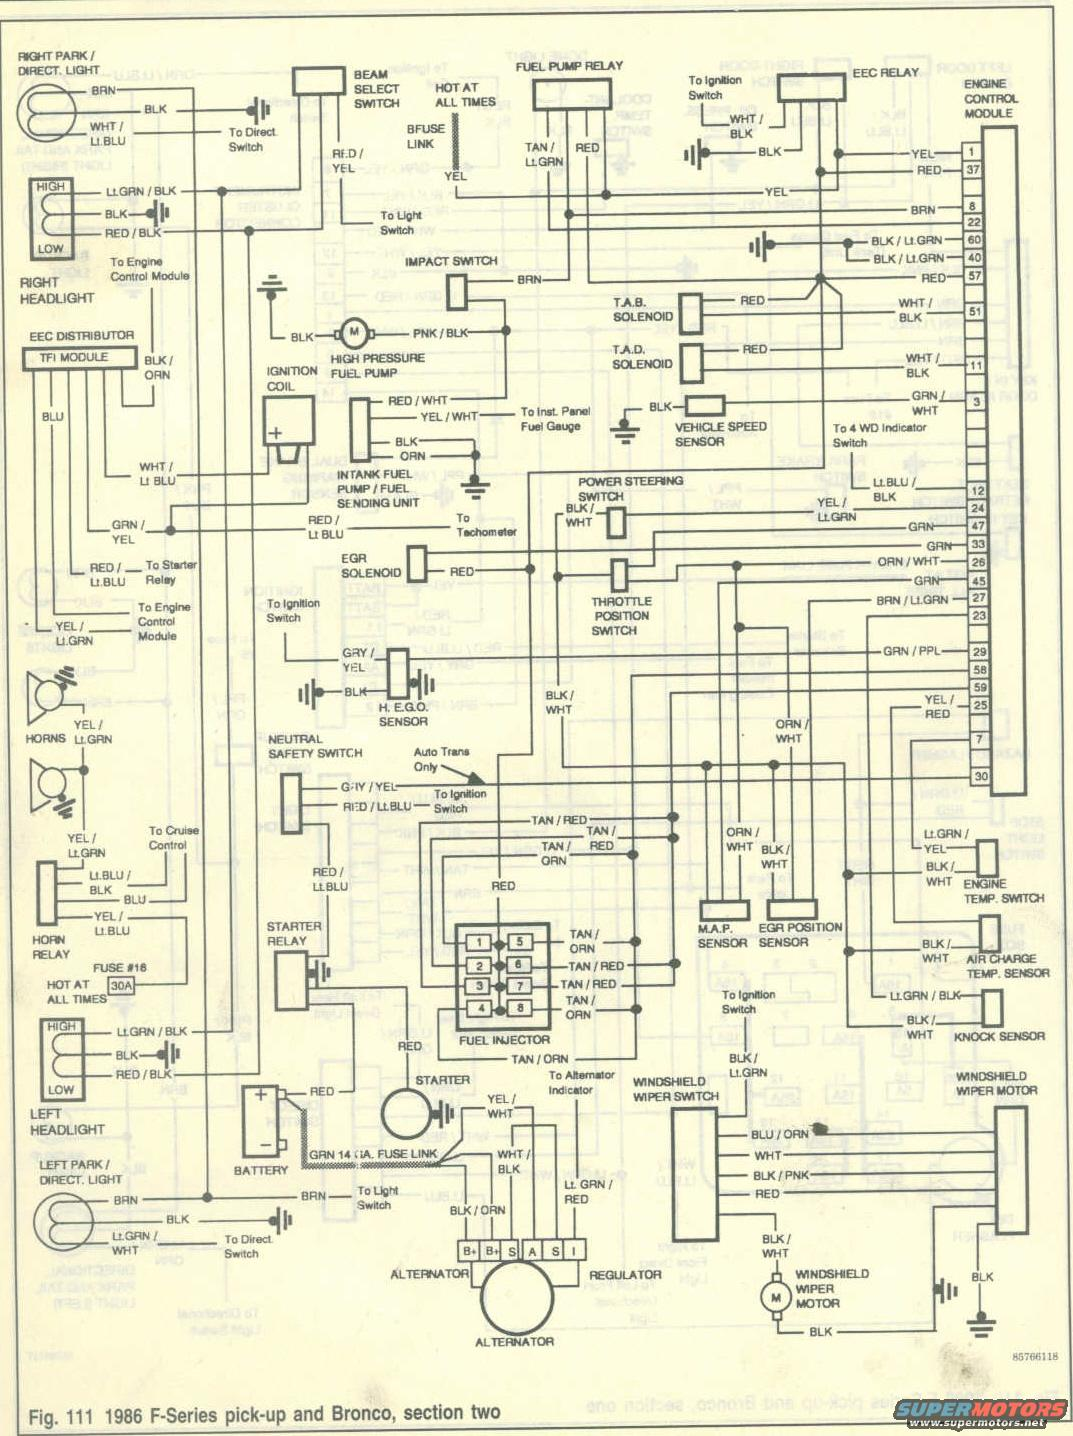 1994 ford thunderbird wiring diagram